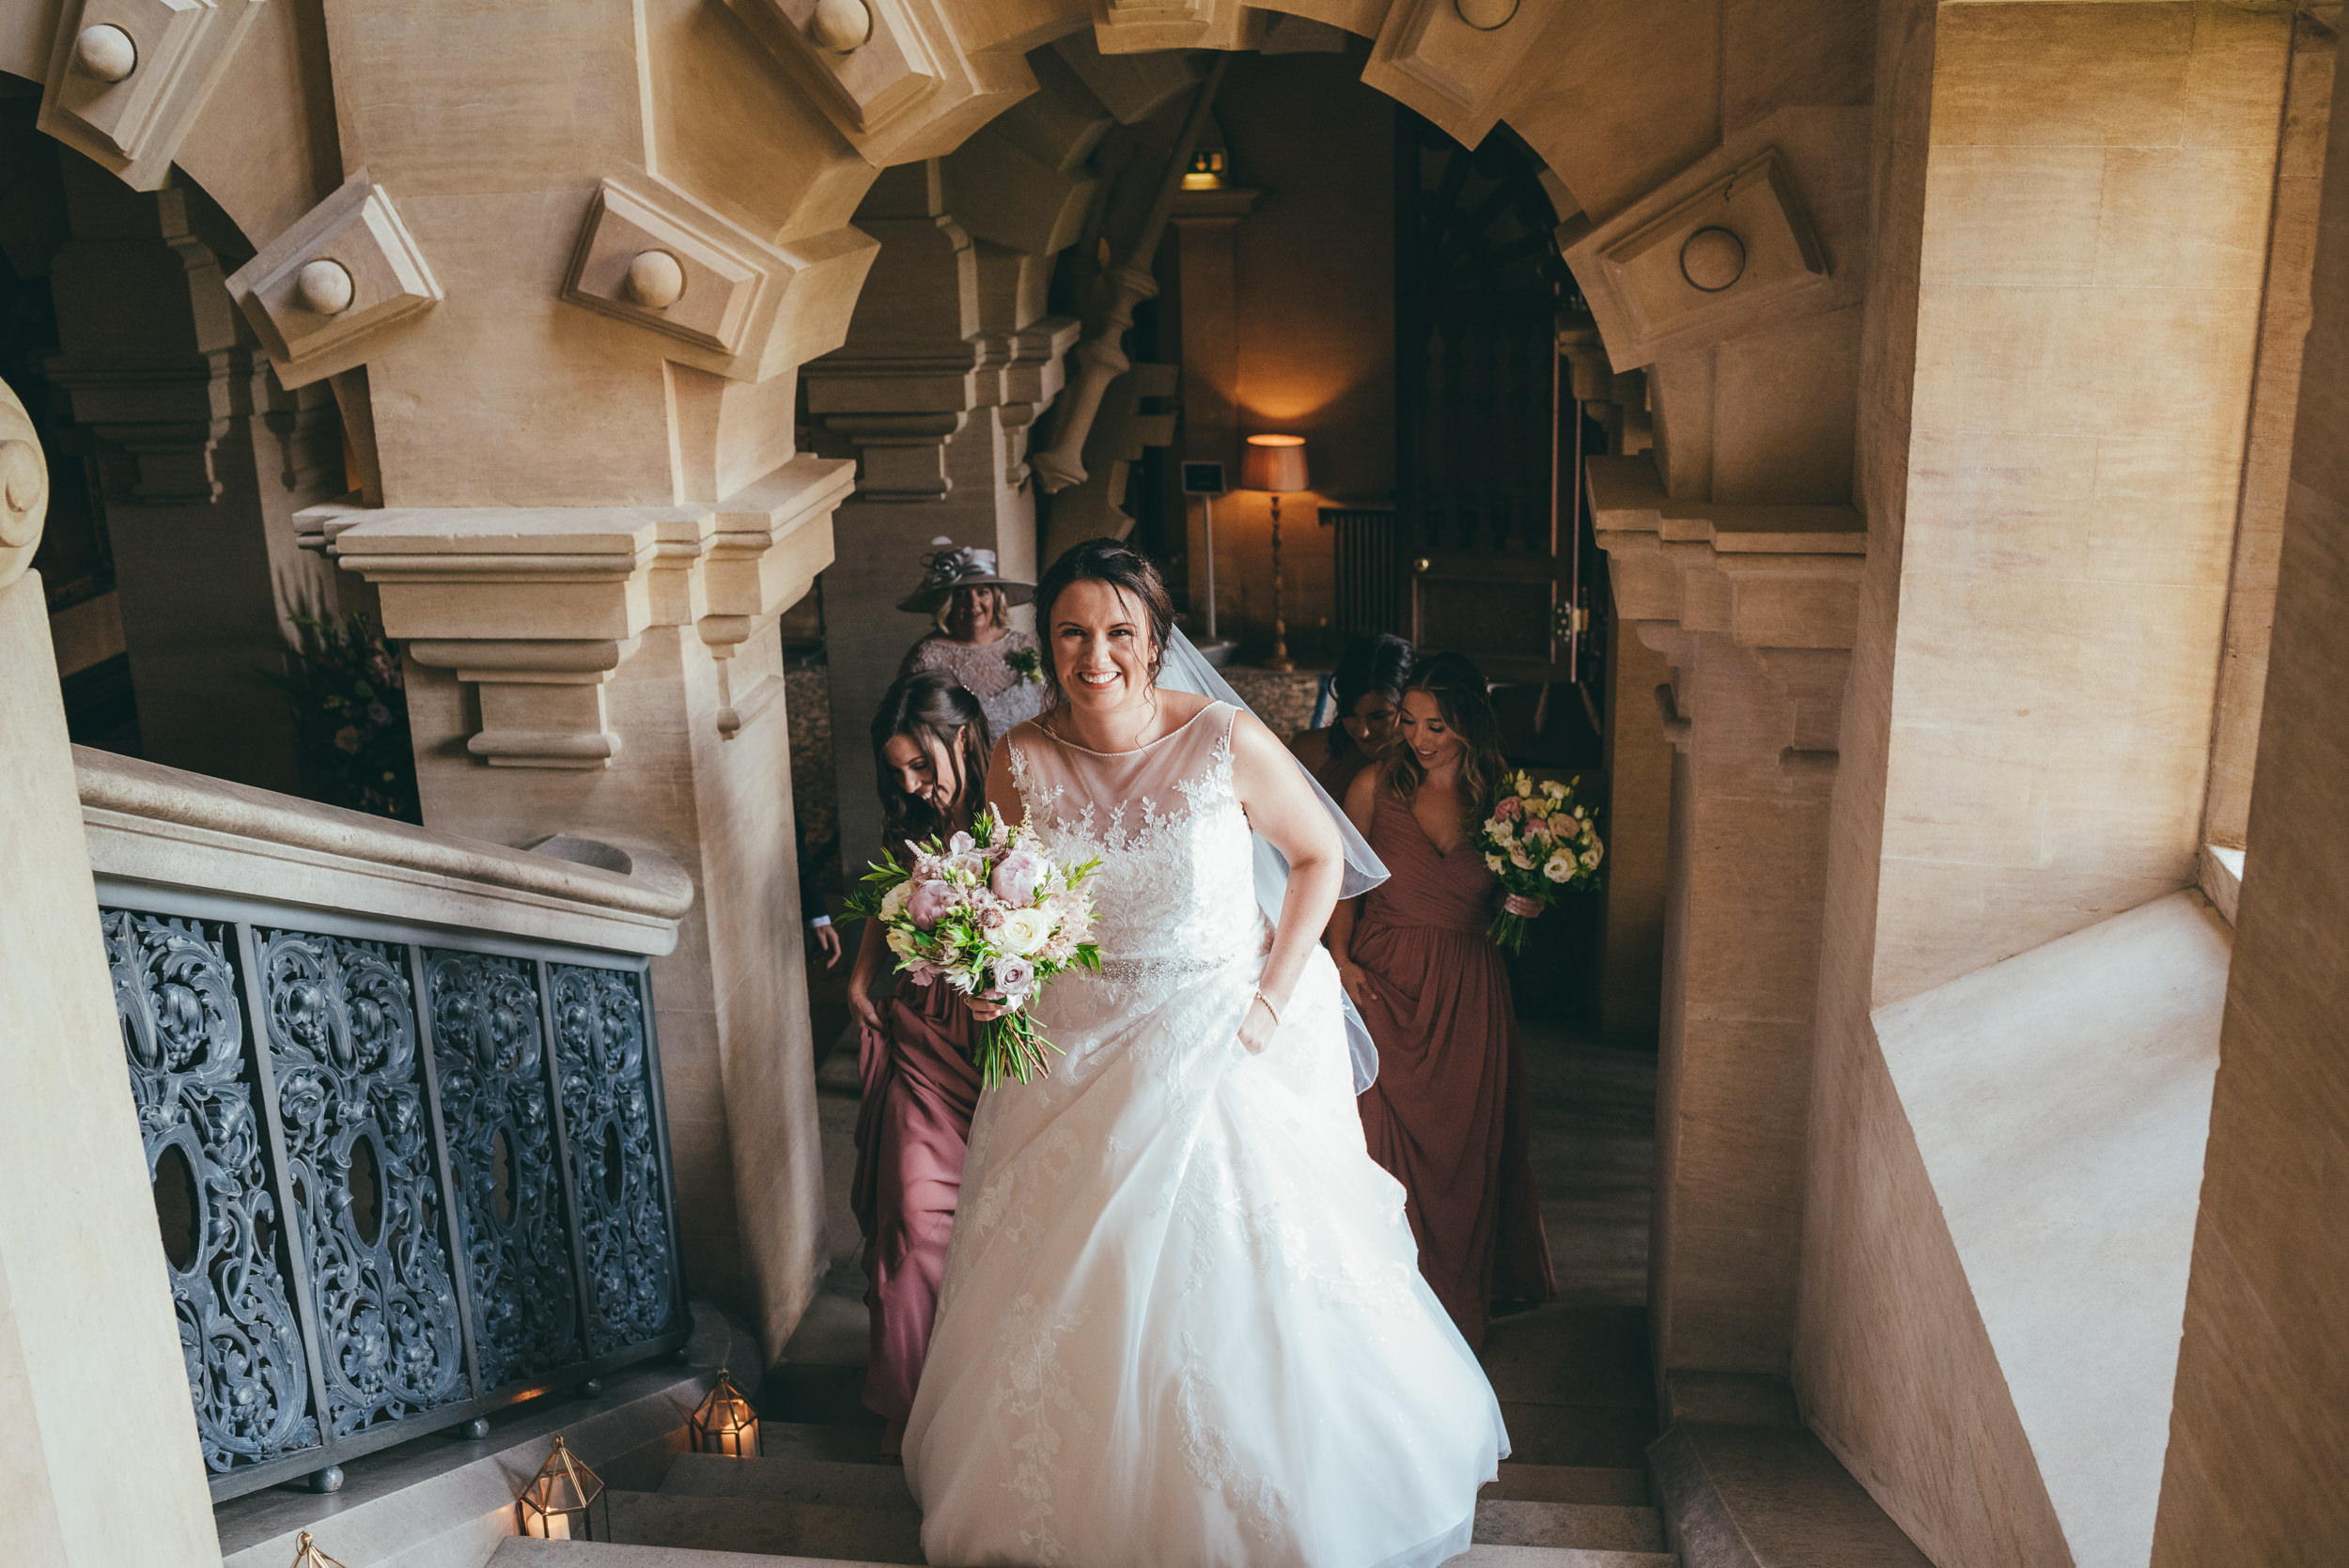 Bride walking up the stairs to get married at Harlaxton Manor